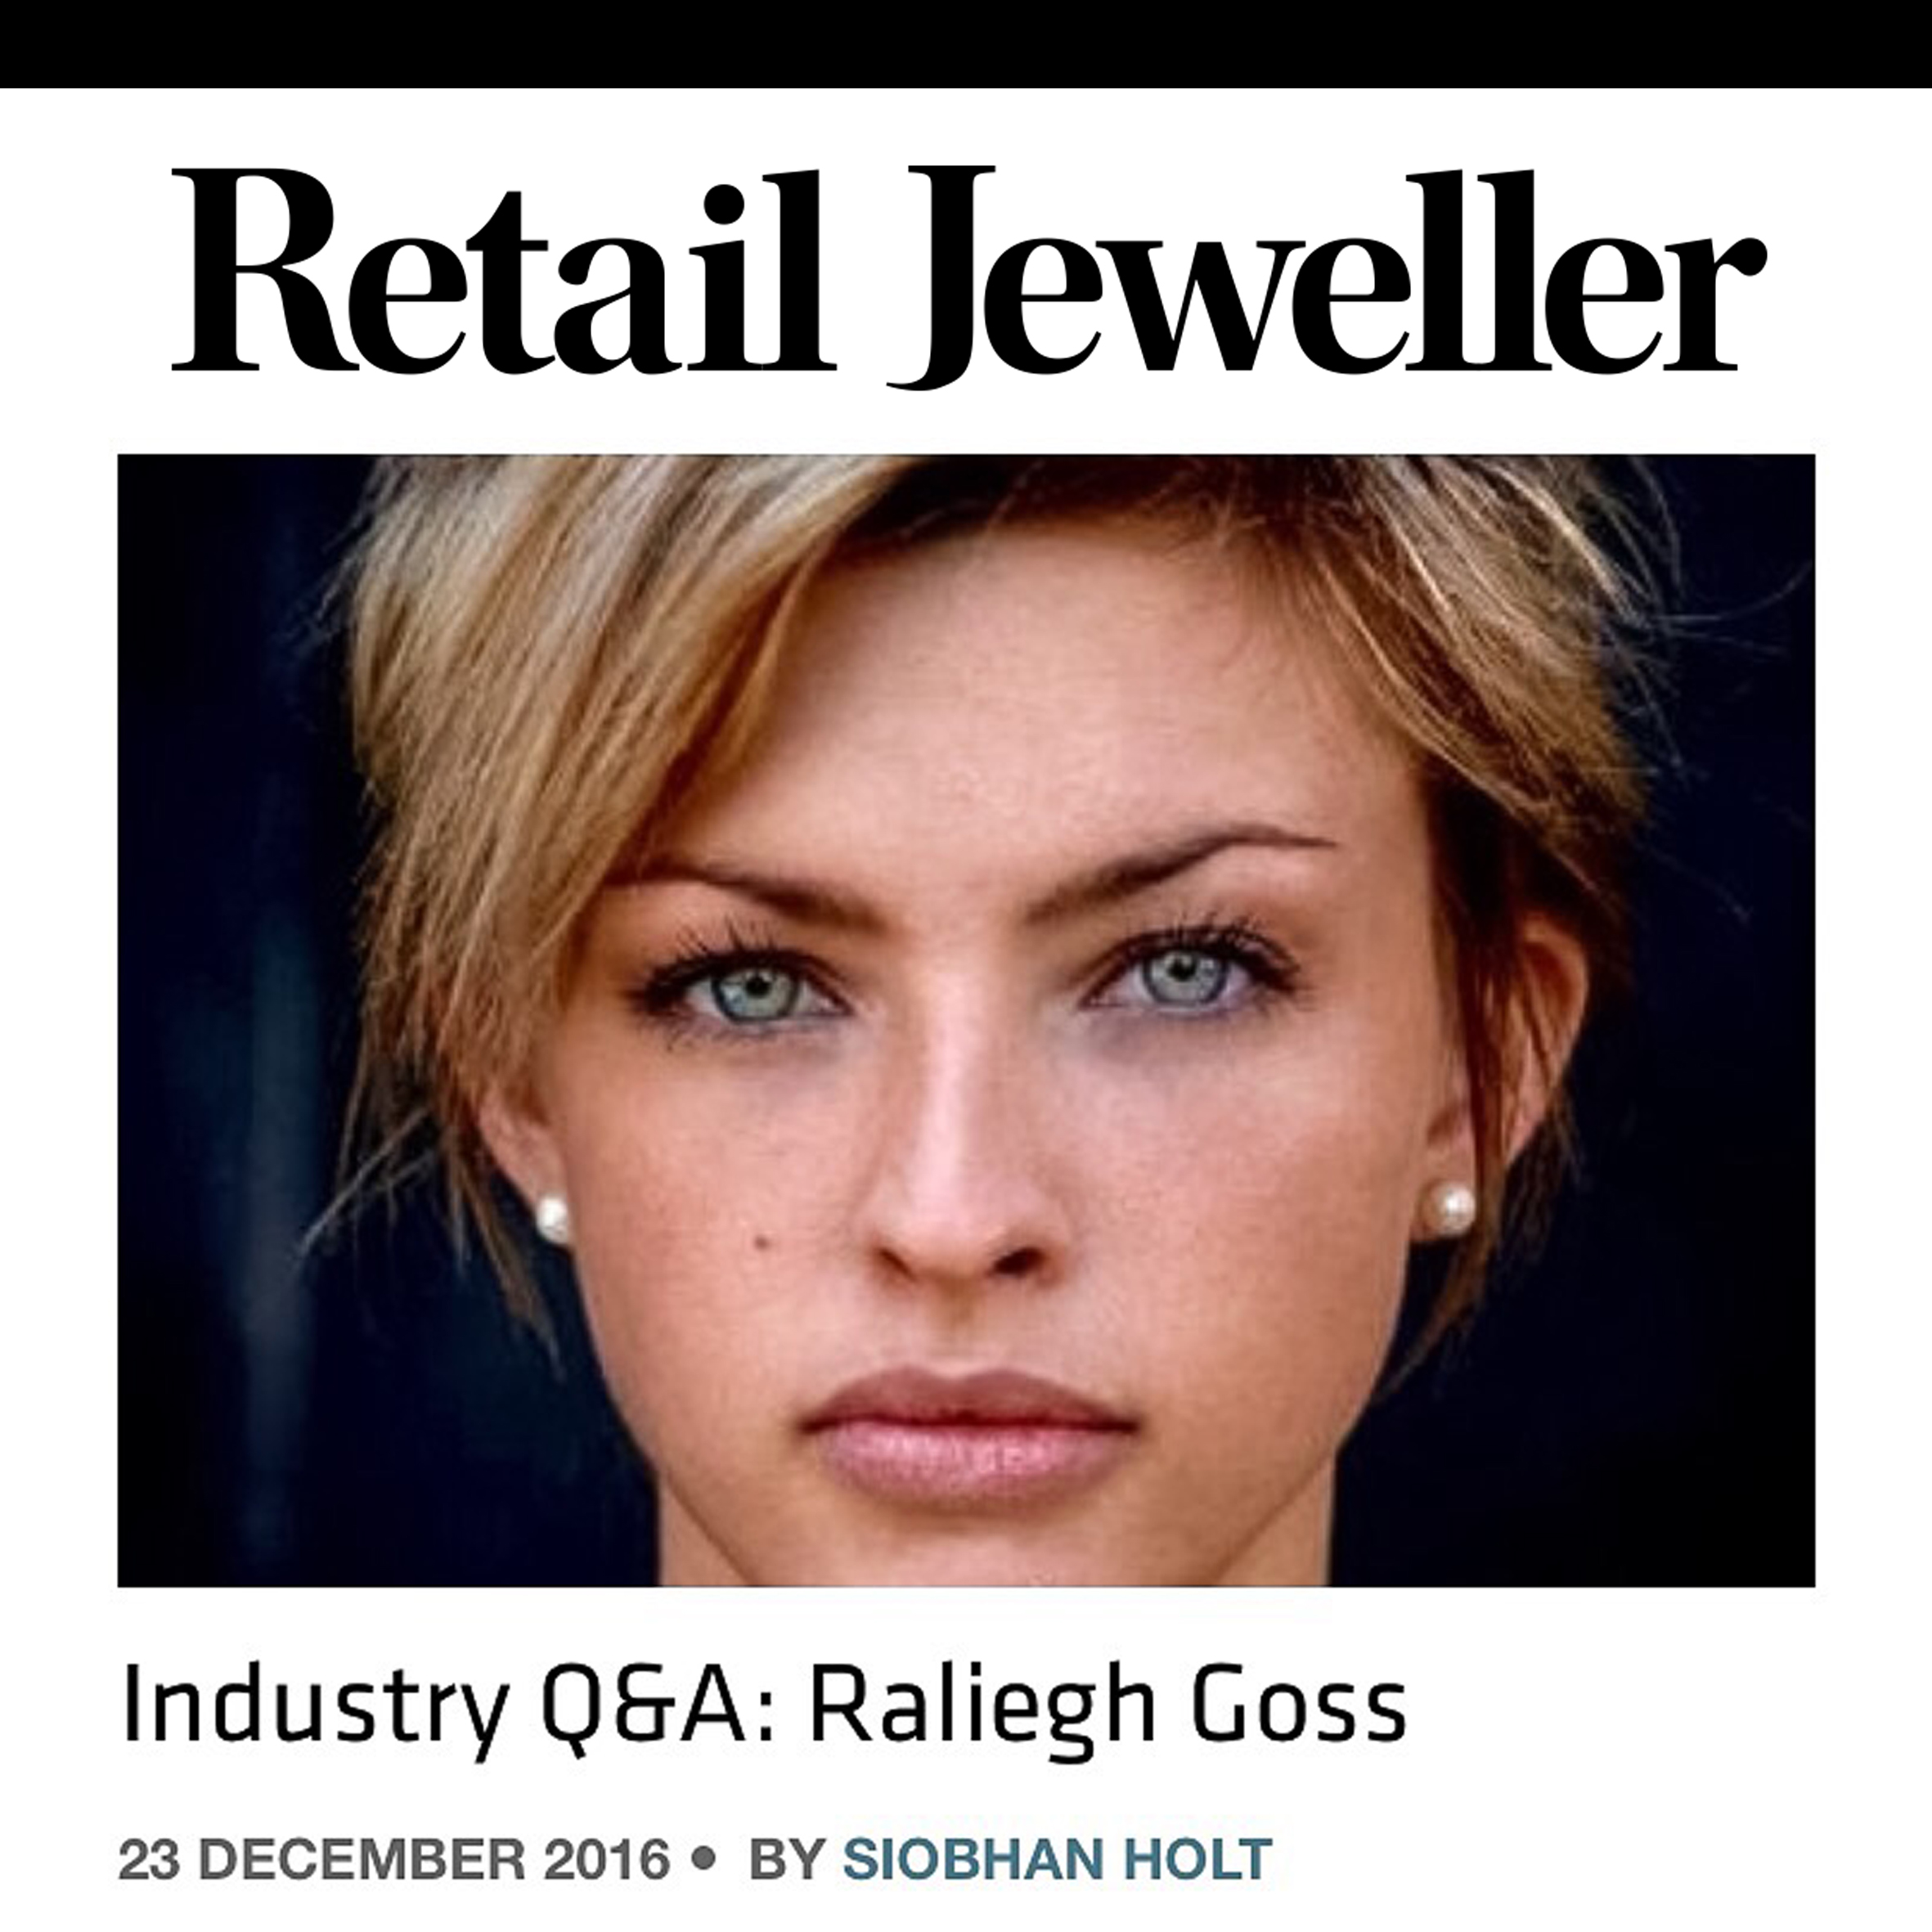 Retail Jeweller Q&A